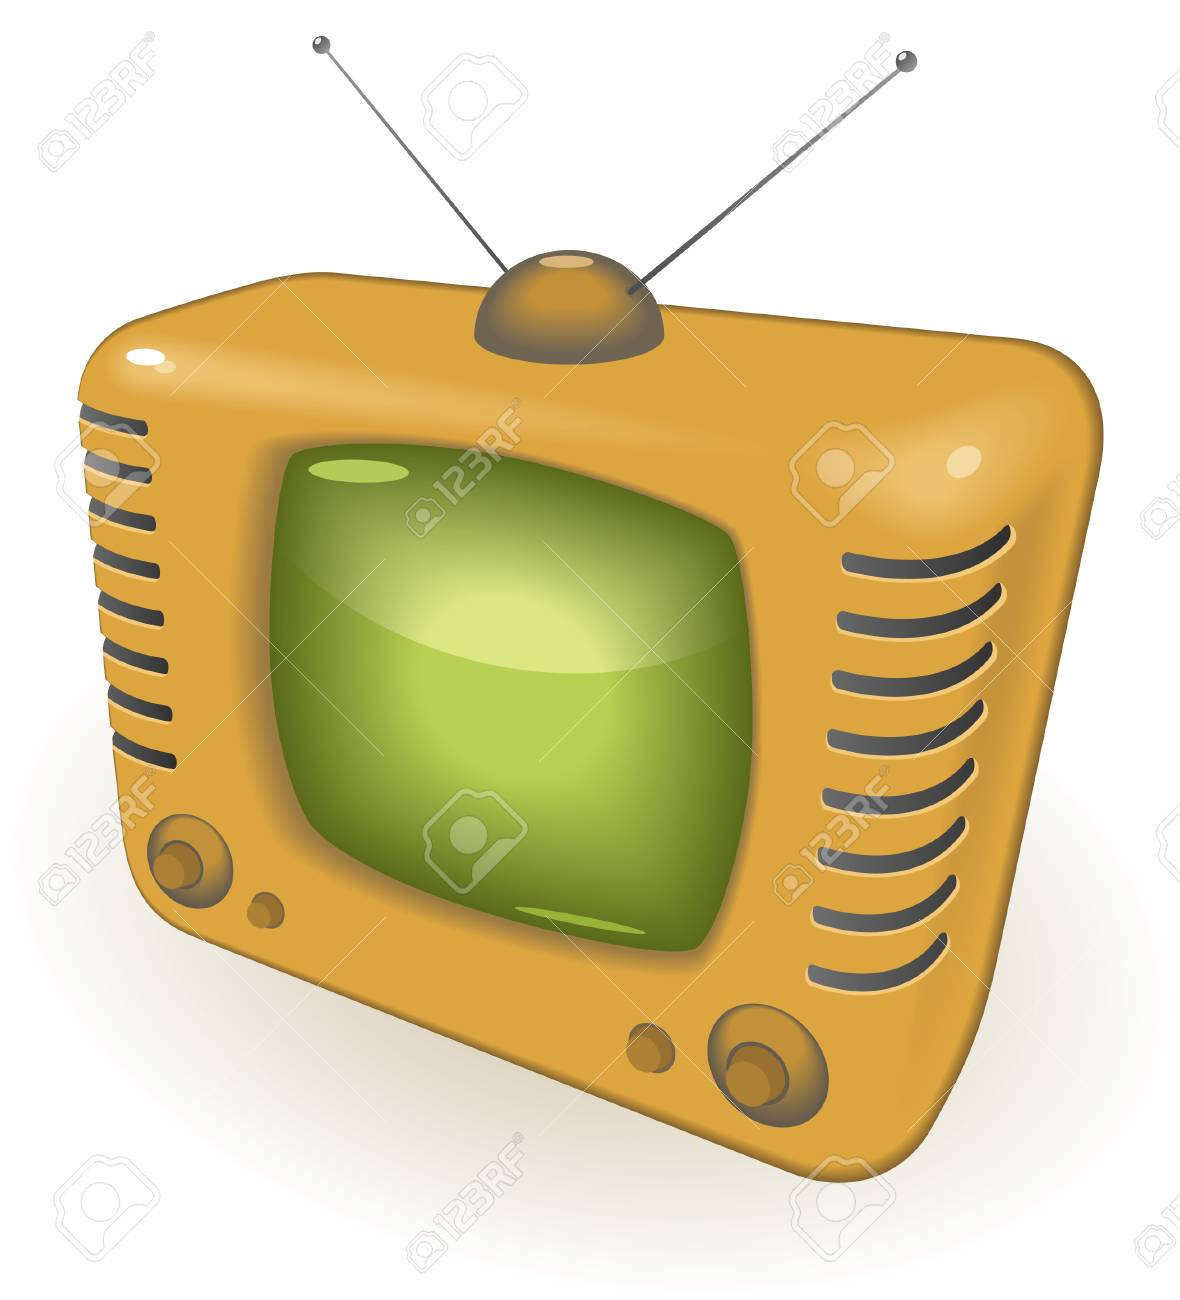 TV with antenna.  illustration. Stock Vector - 7055964